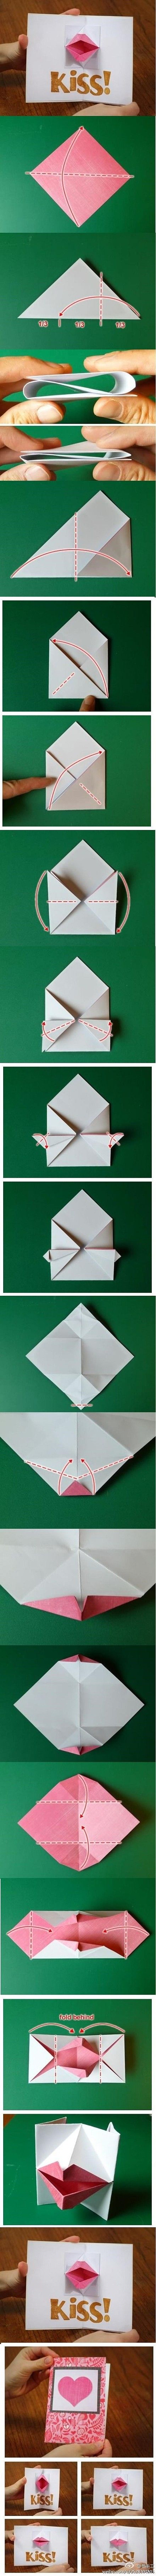 handmade origami card tutorial ... Pop up kiss card ... luv it! ... perfect for Valentines Day ...